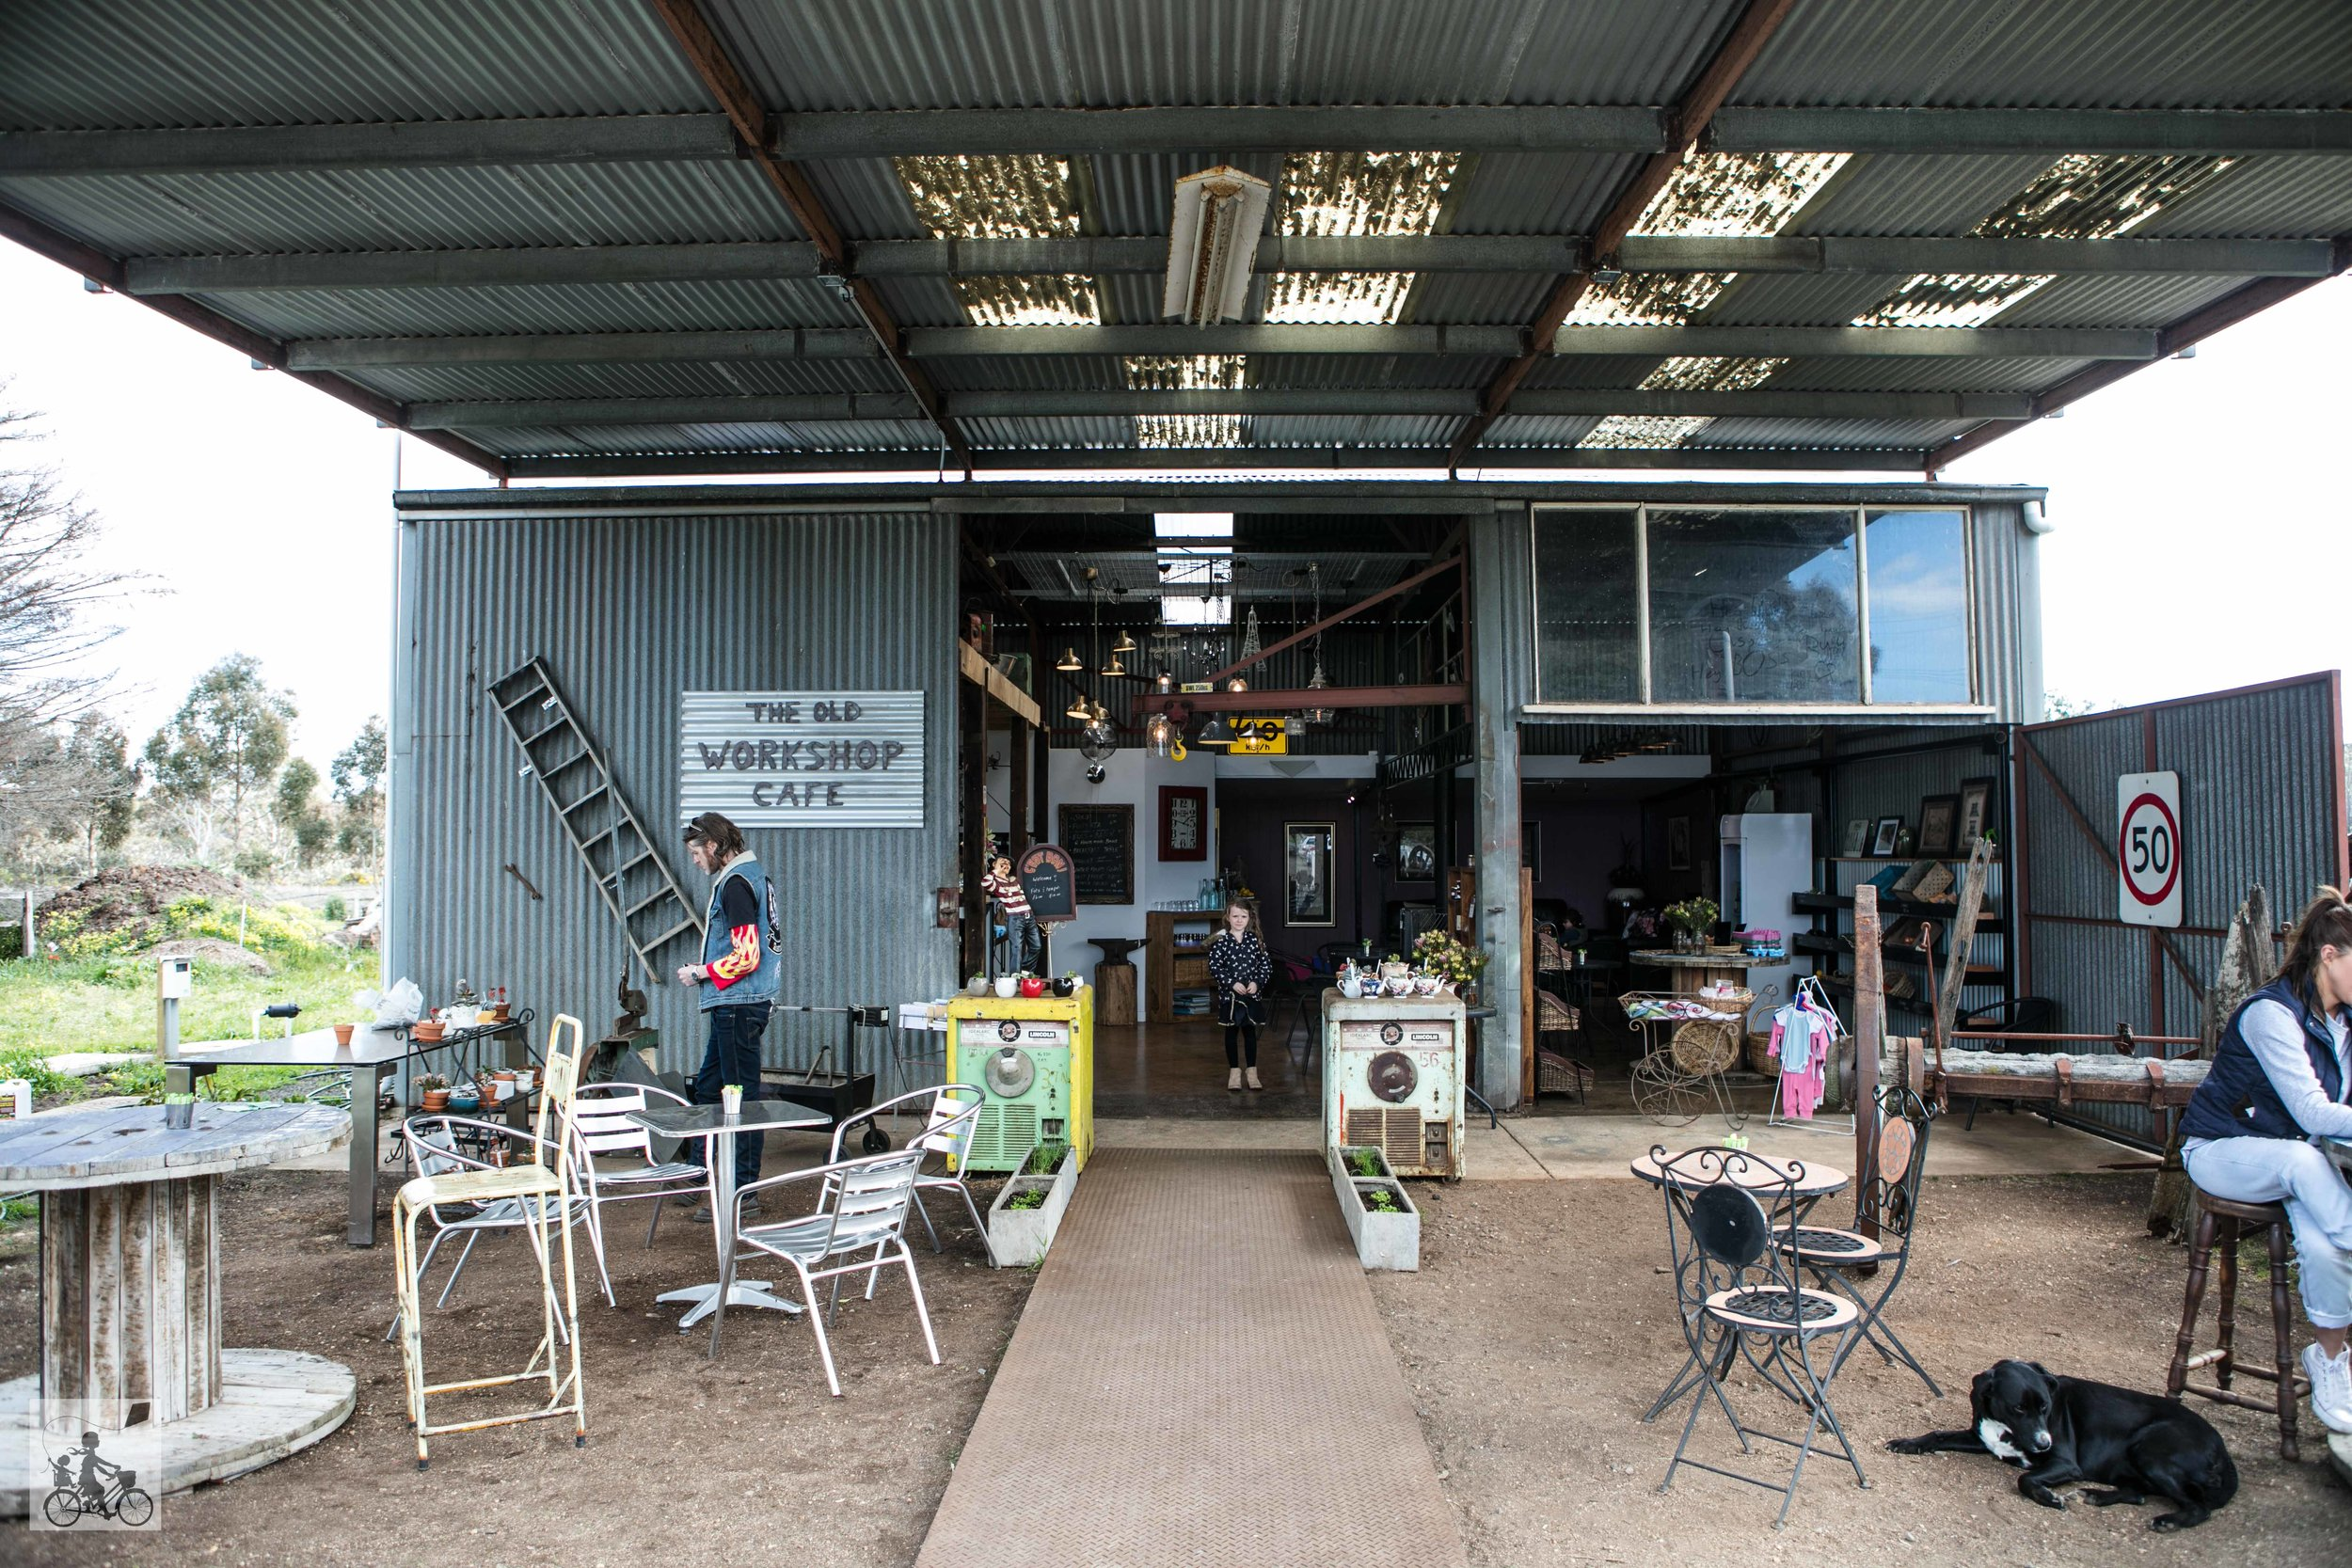 the old workshop cafe - mamma knows west